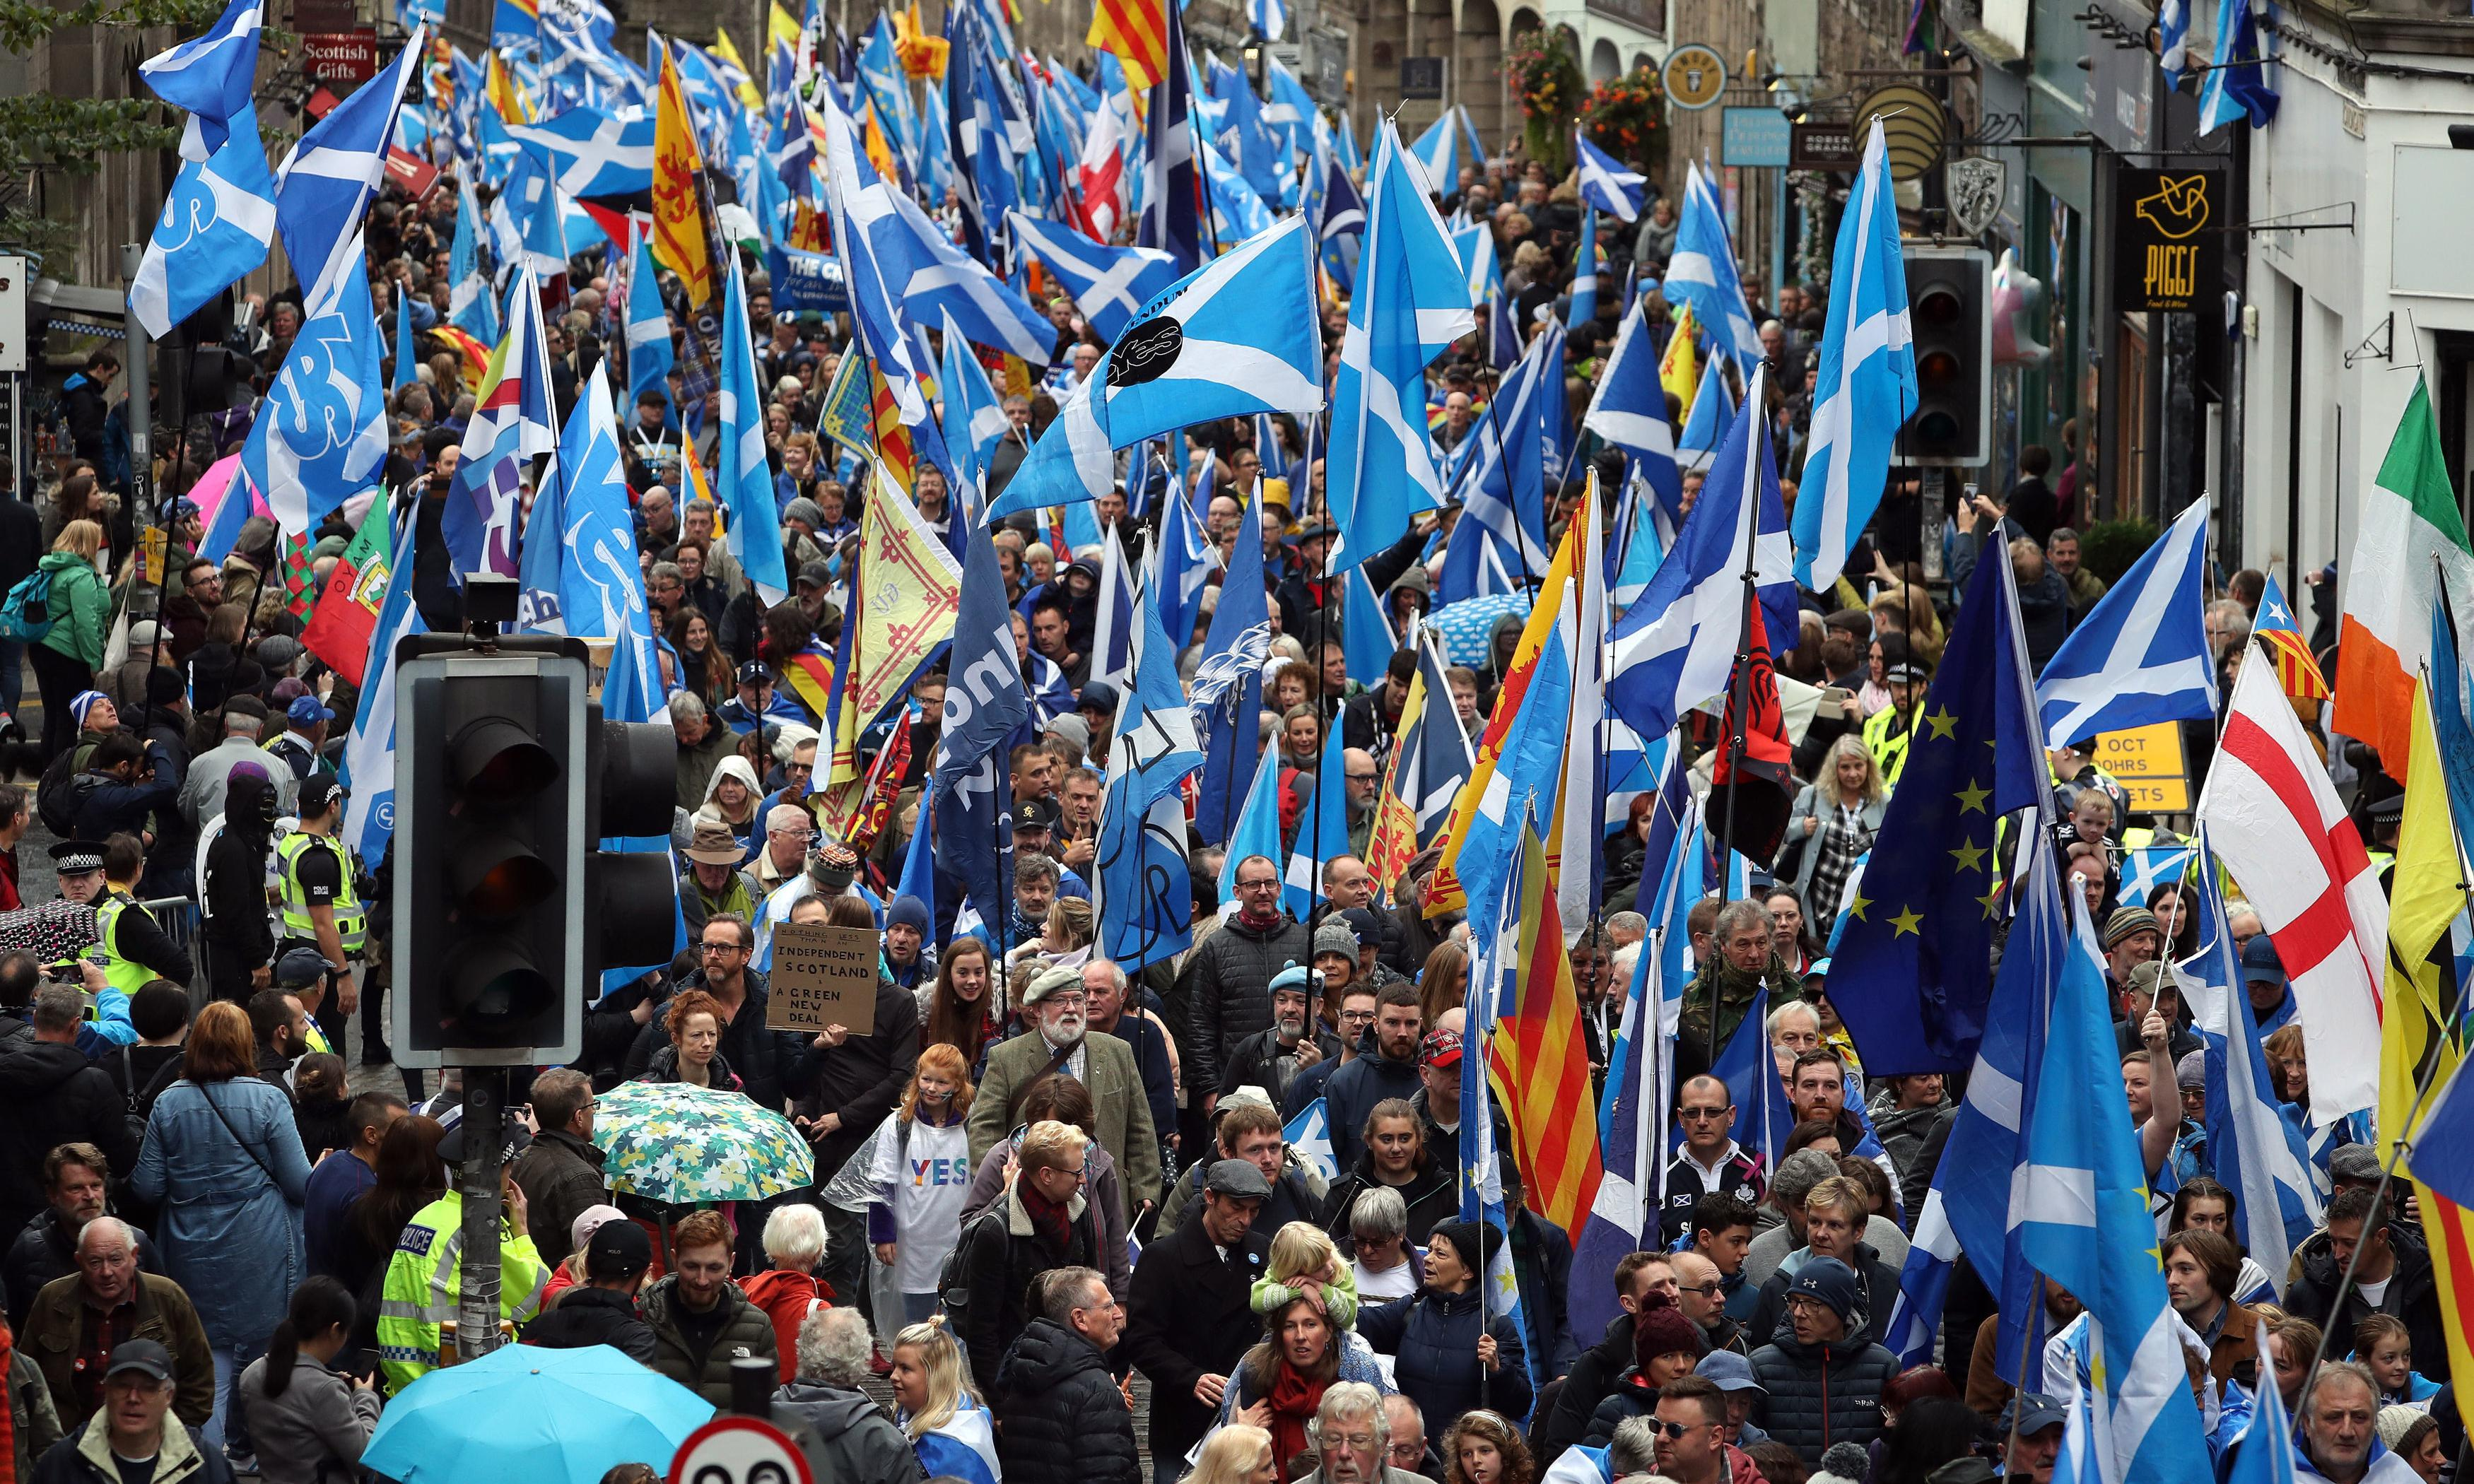 Thousands attend Scottish independence march in Edinburgh